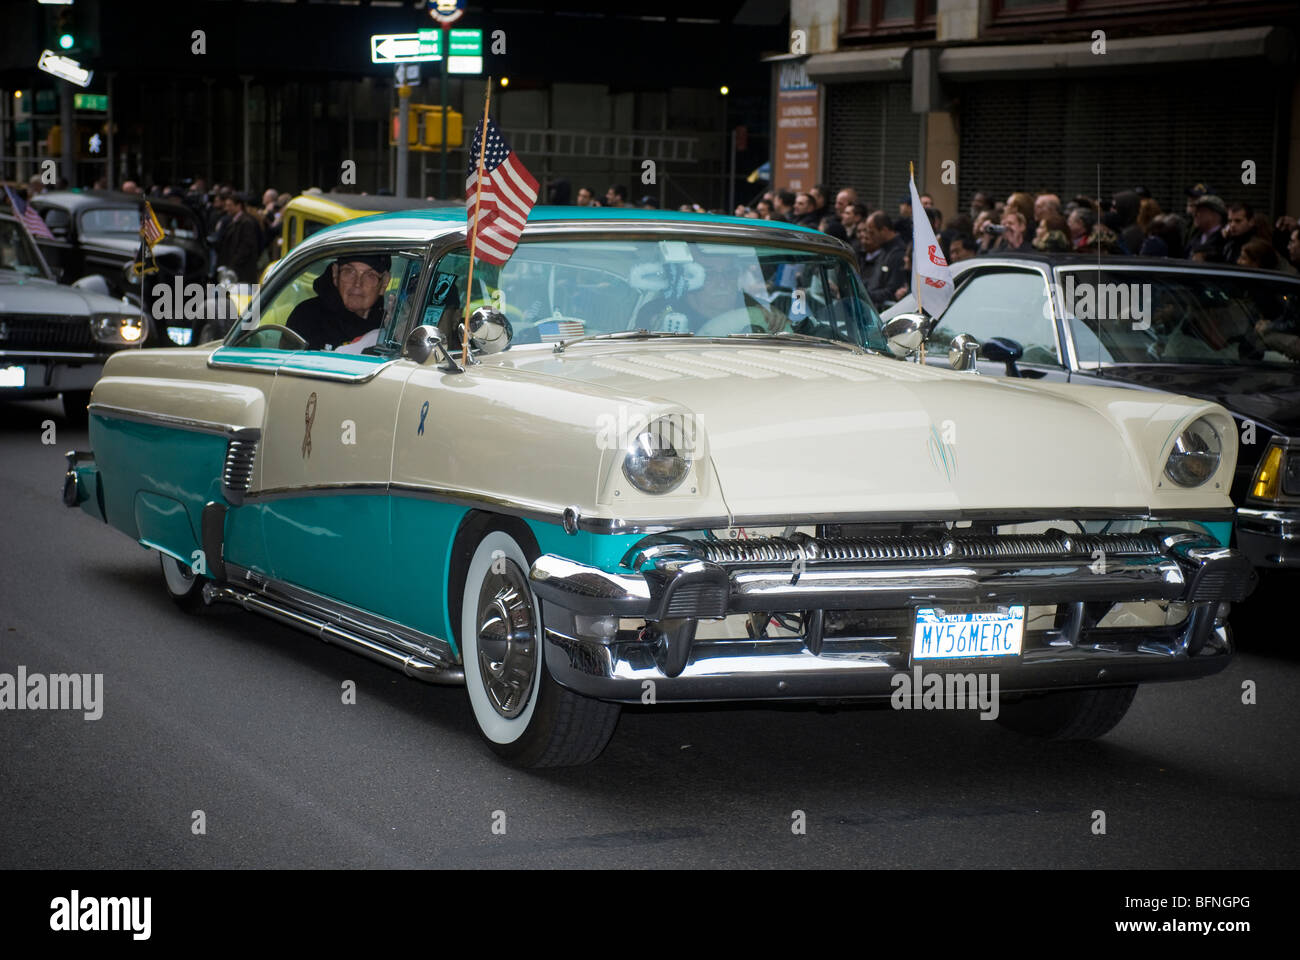 1956 ford mercury classic car in the 91st annual veterans day parade in new york